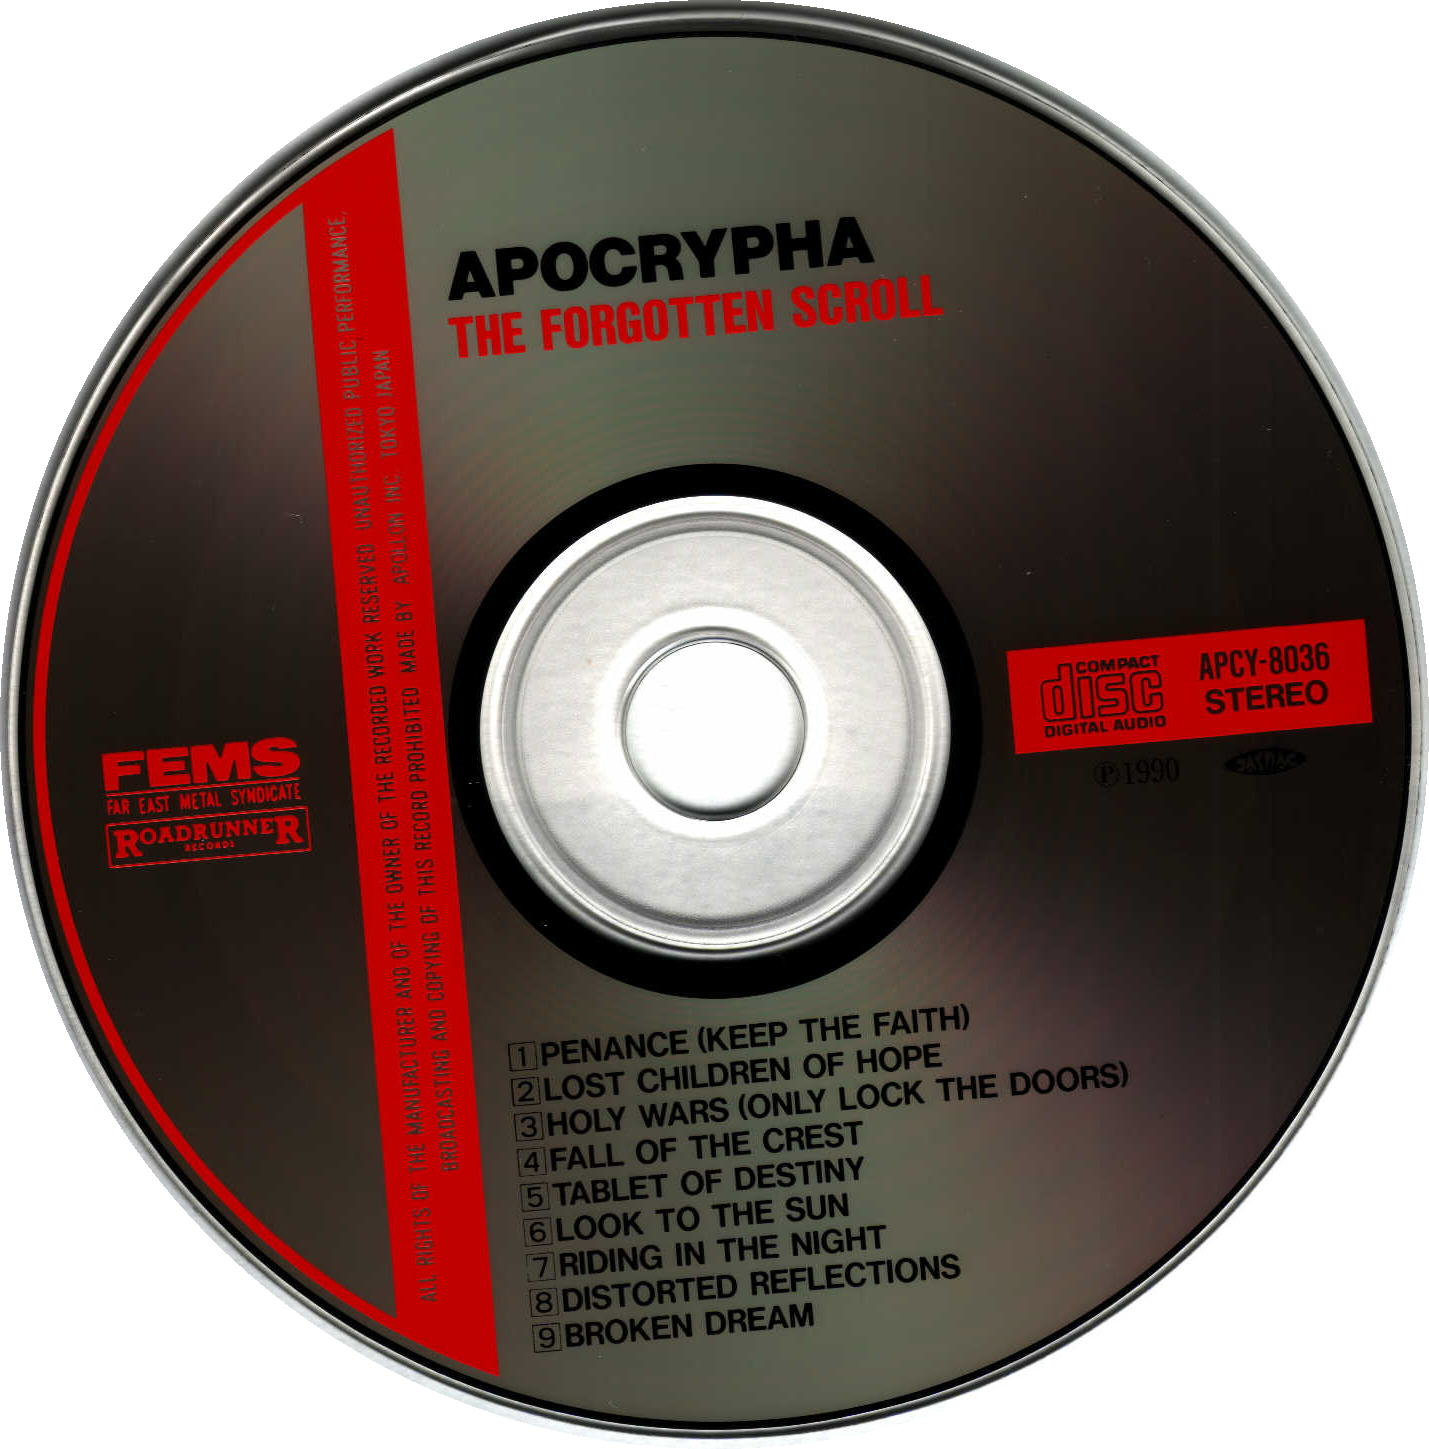 Apocrypha - The Forgotten Scroll (Original Jap CD)